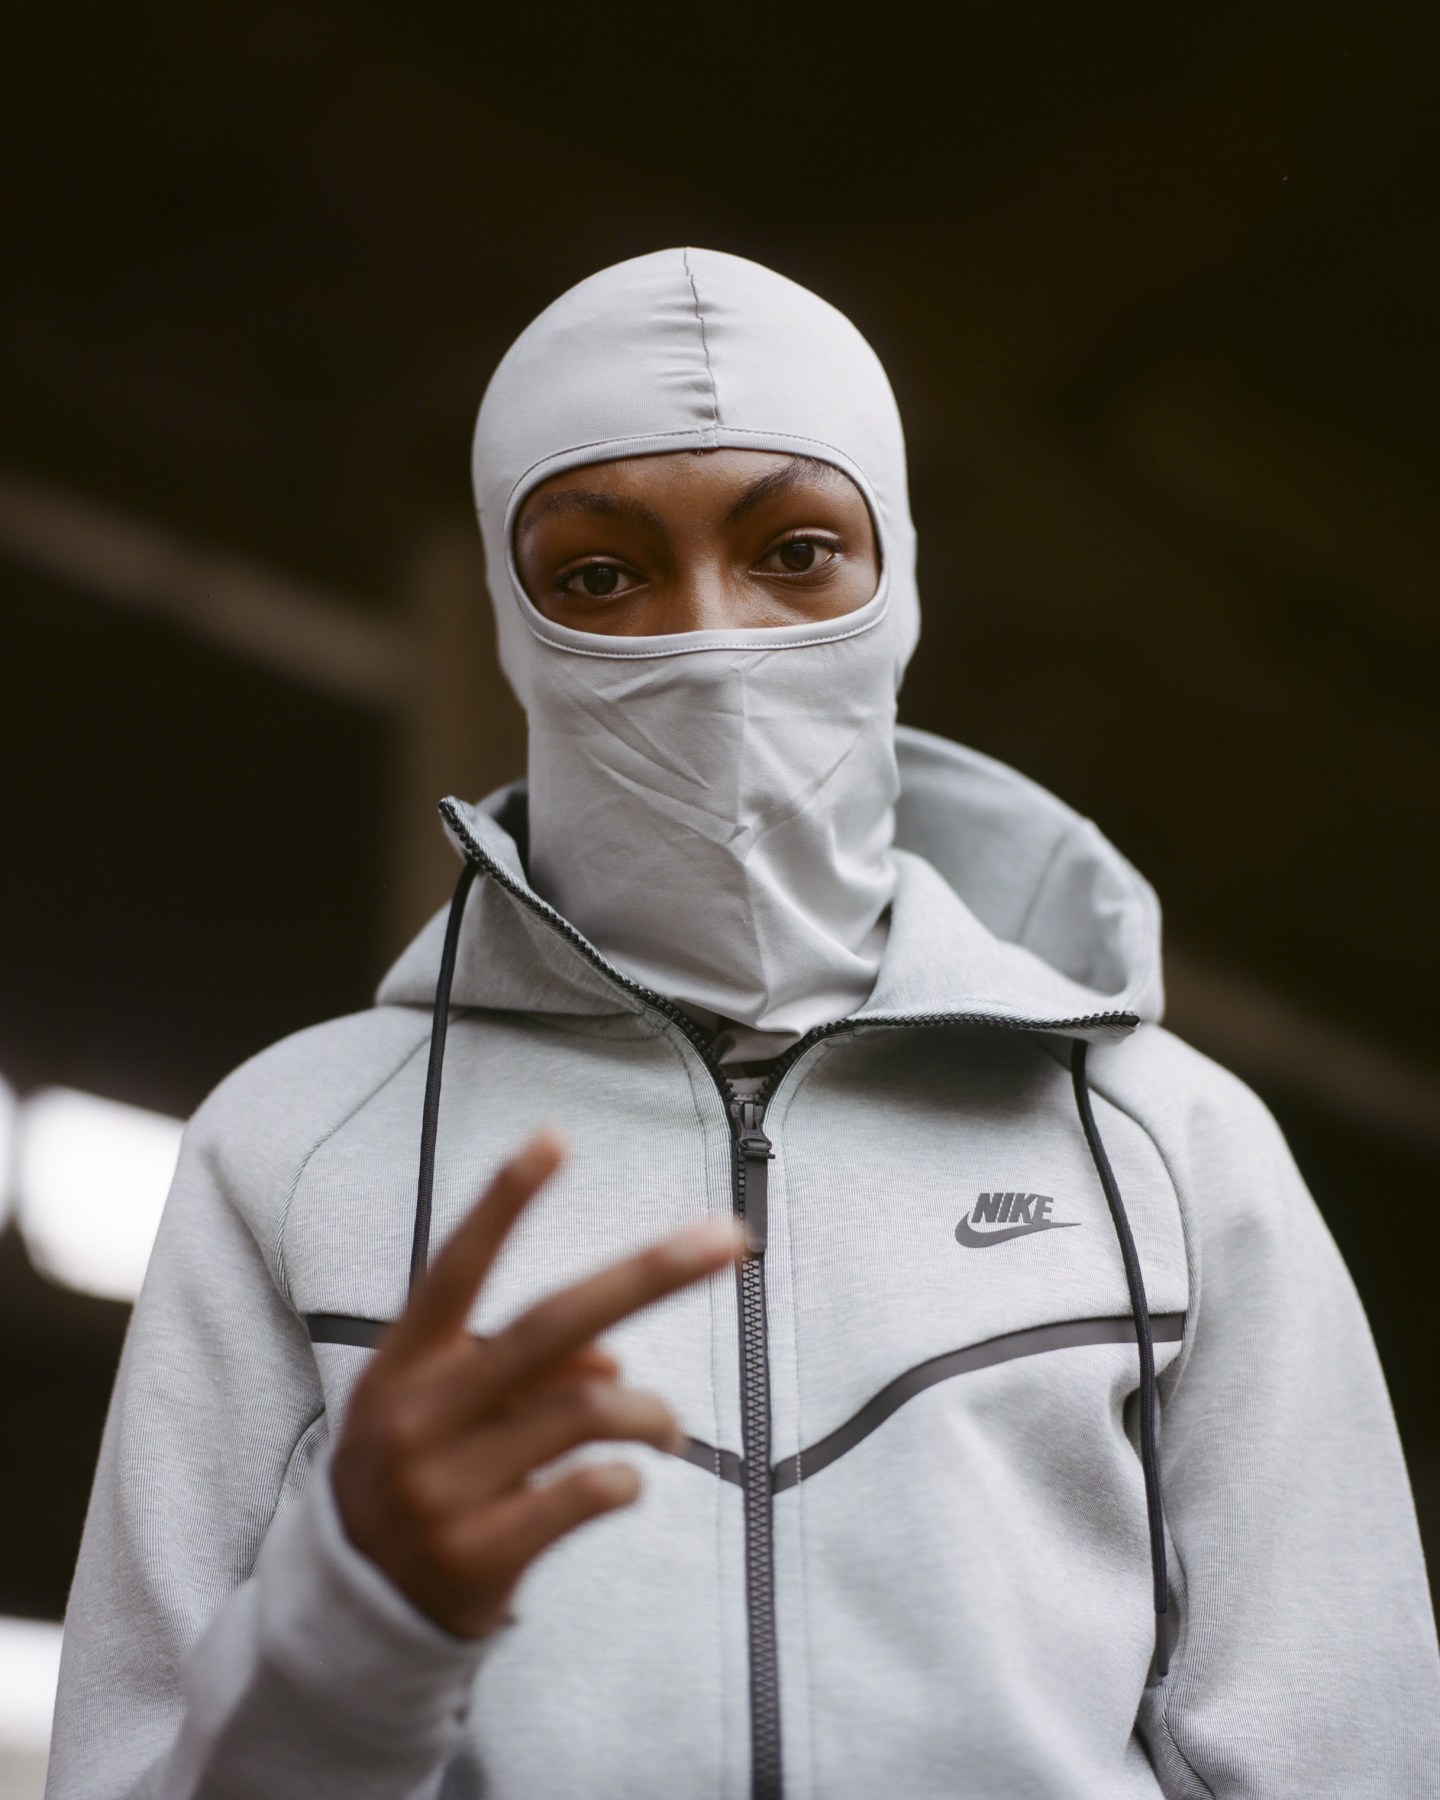 U.K. rapper SL, in his own words for the first time